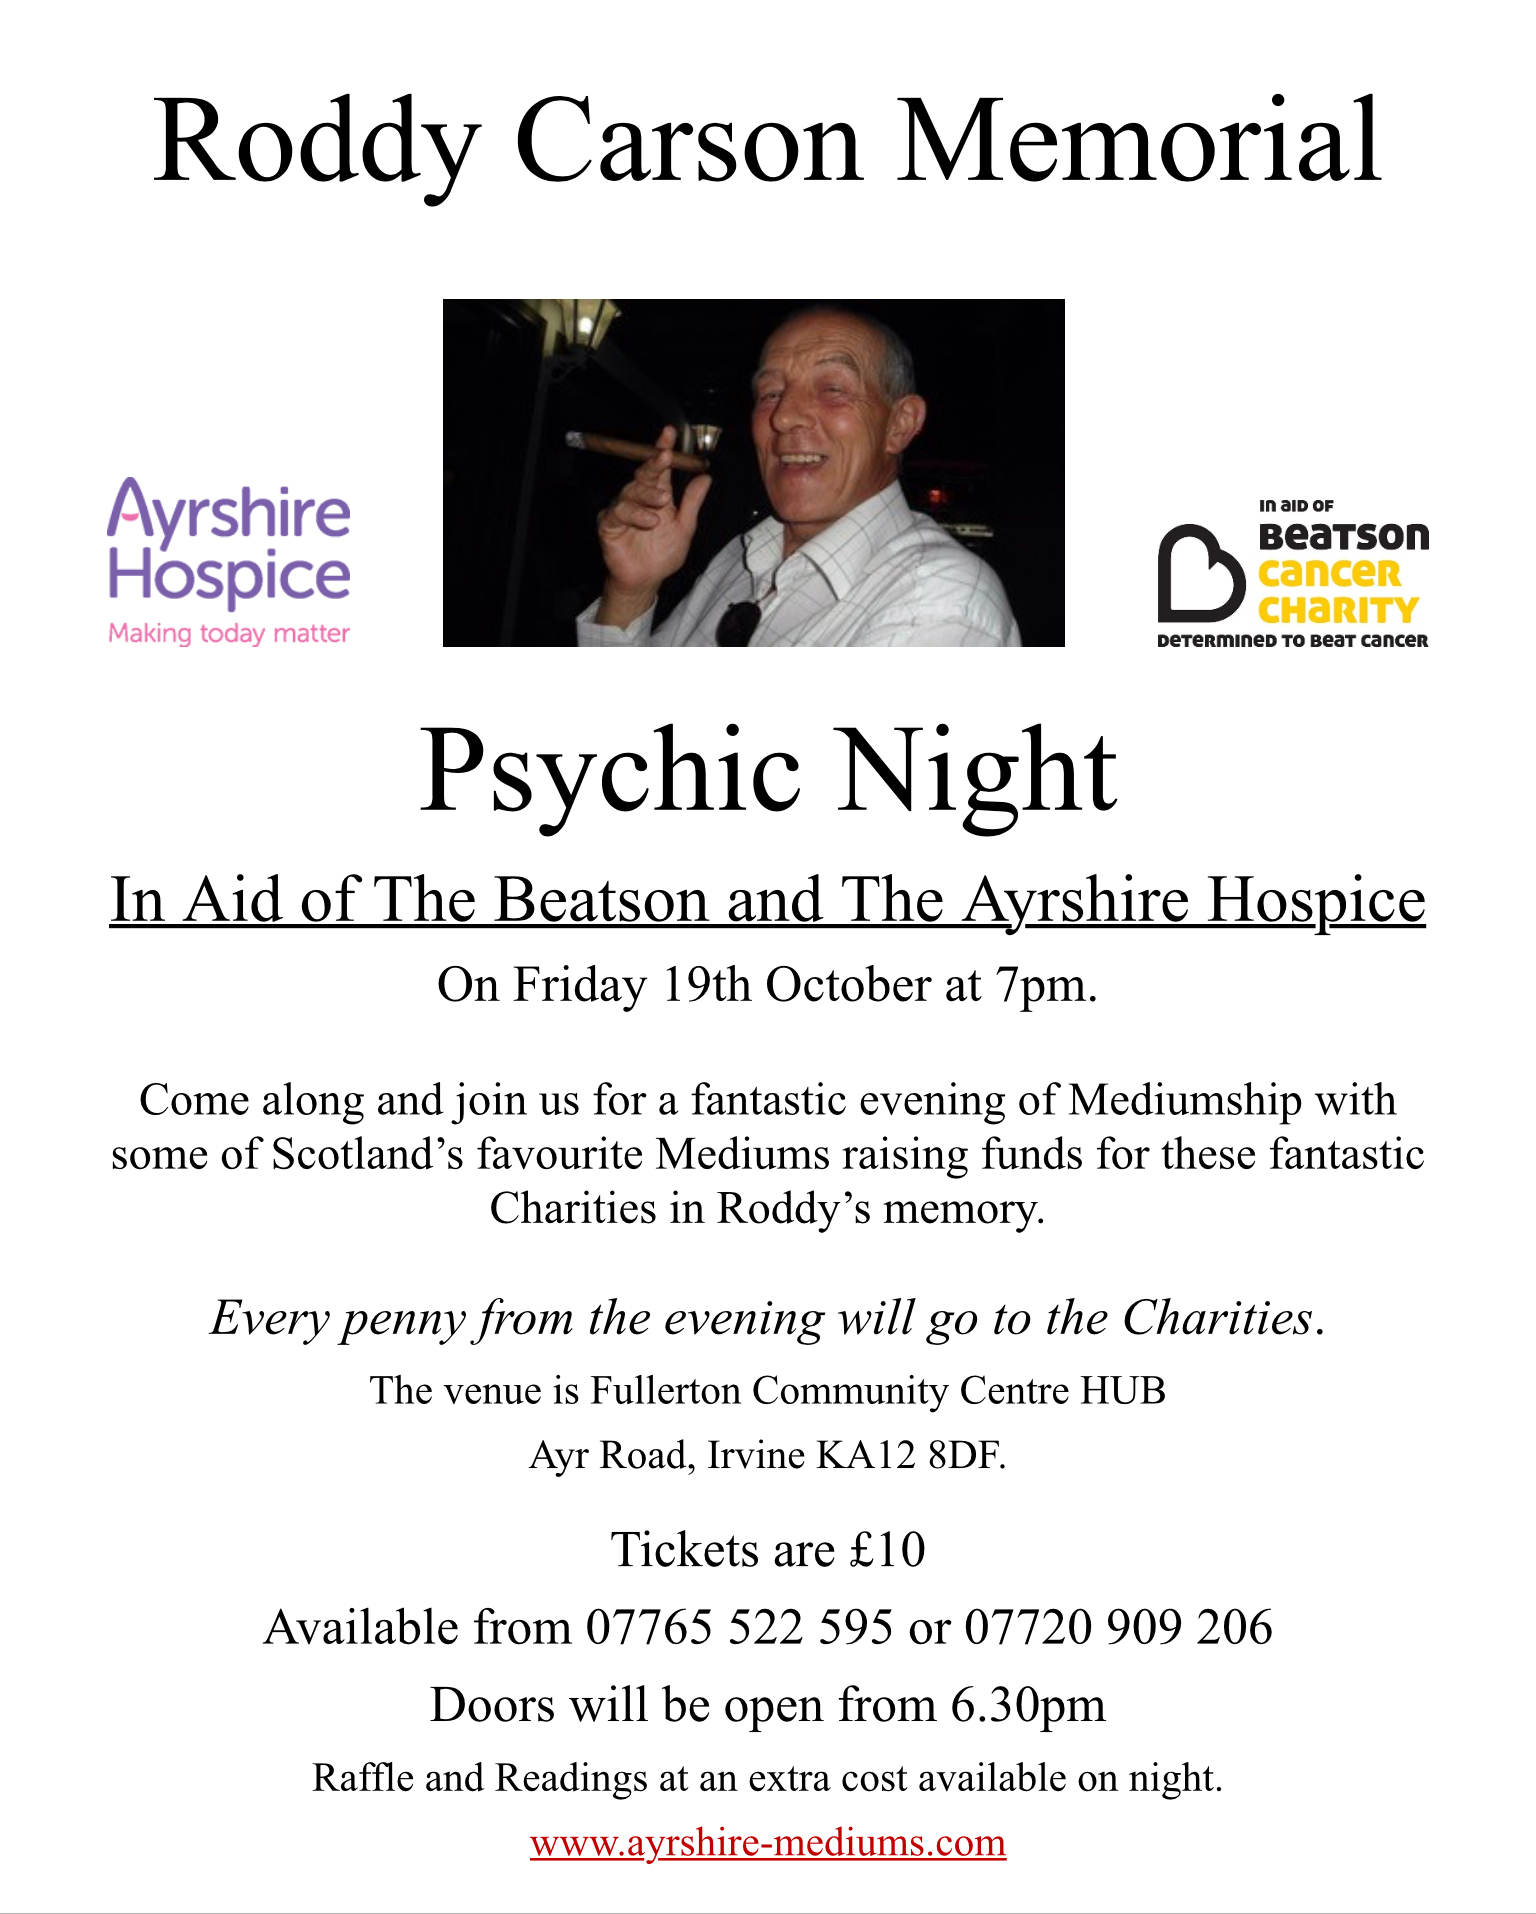 Roddy carson Memorial Psychic Night